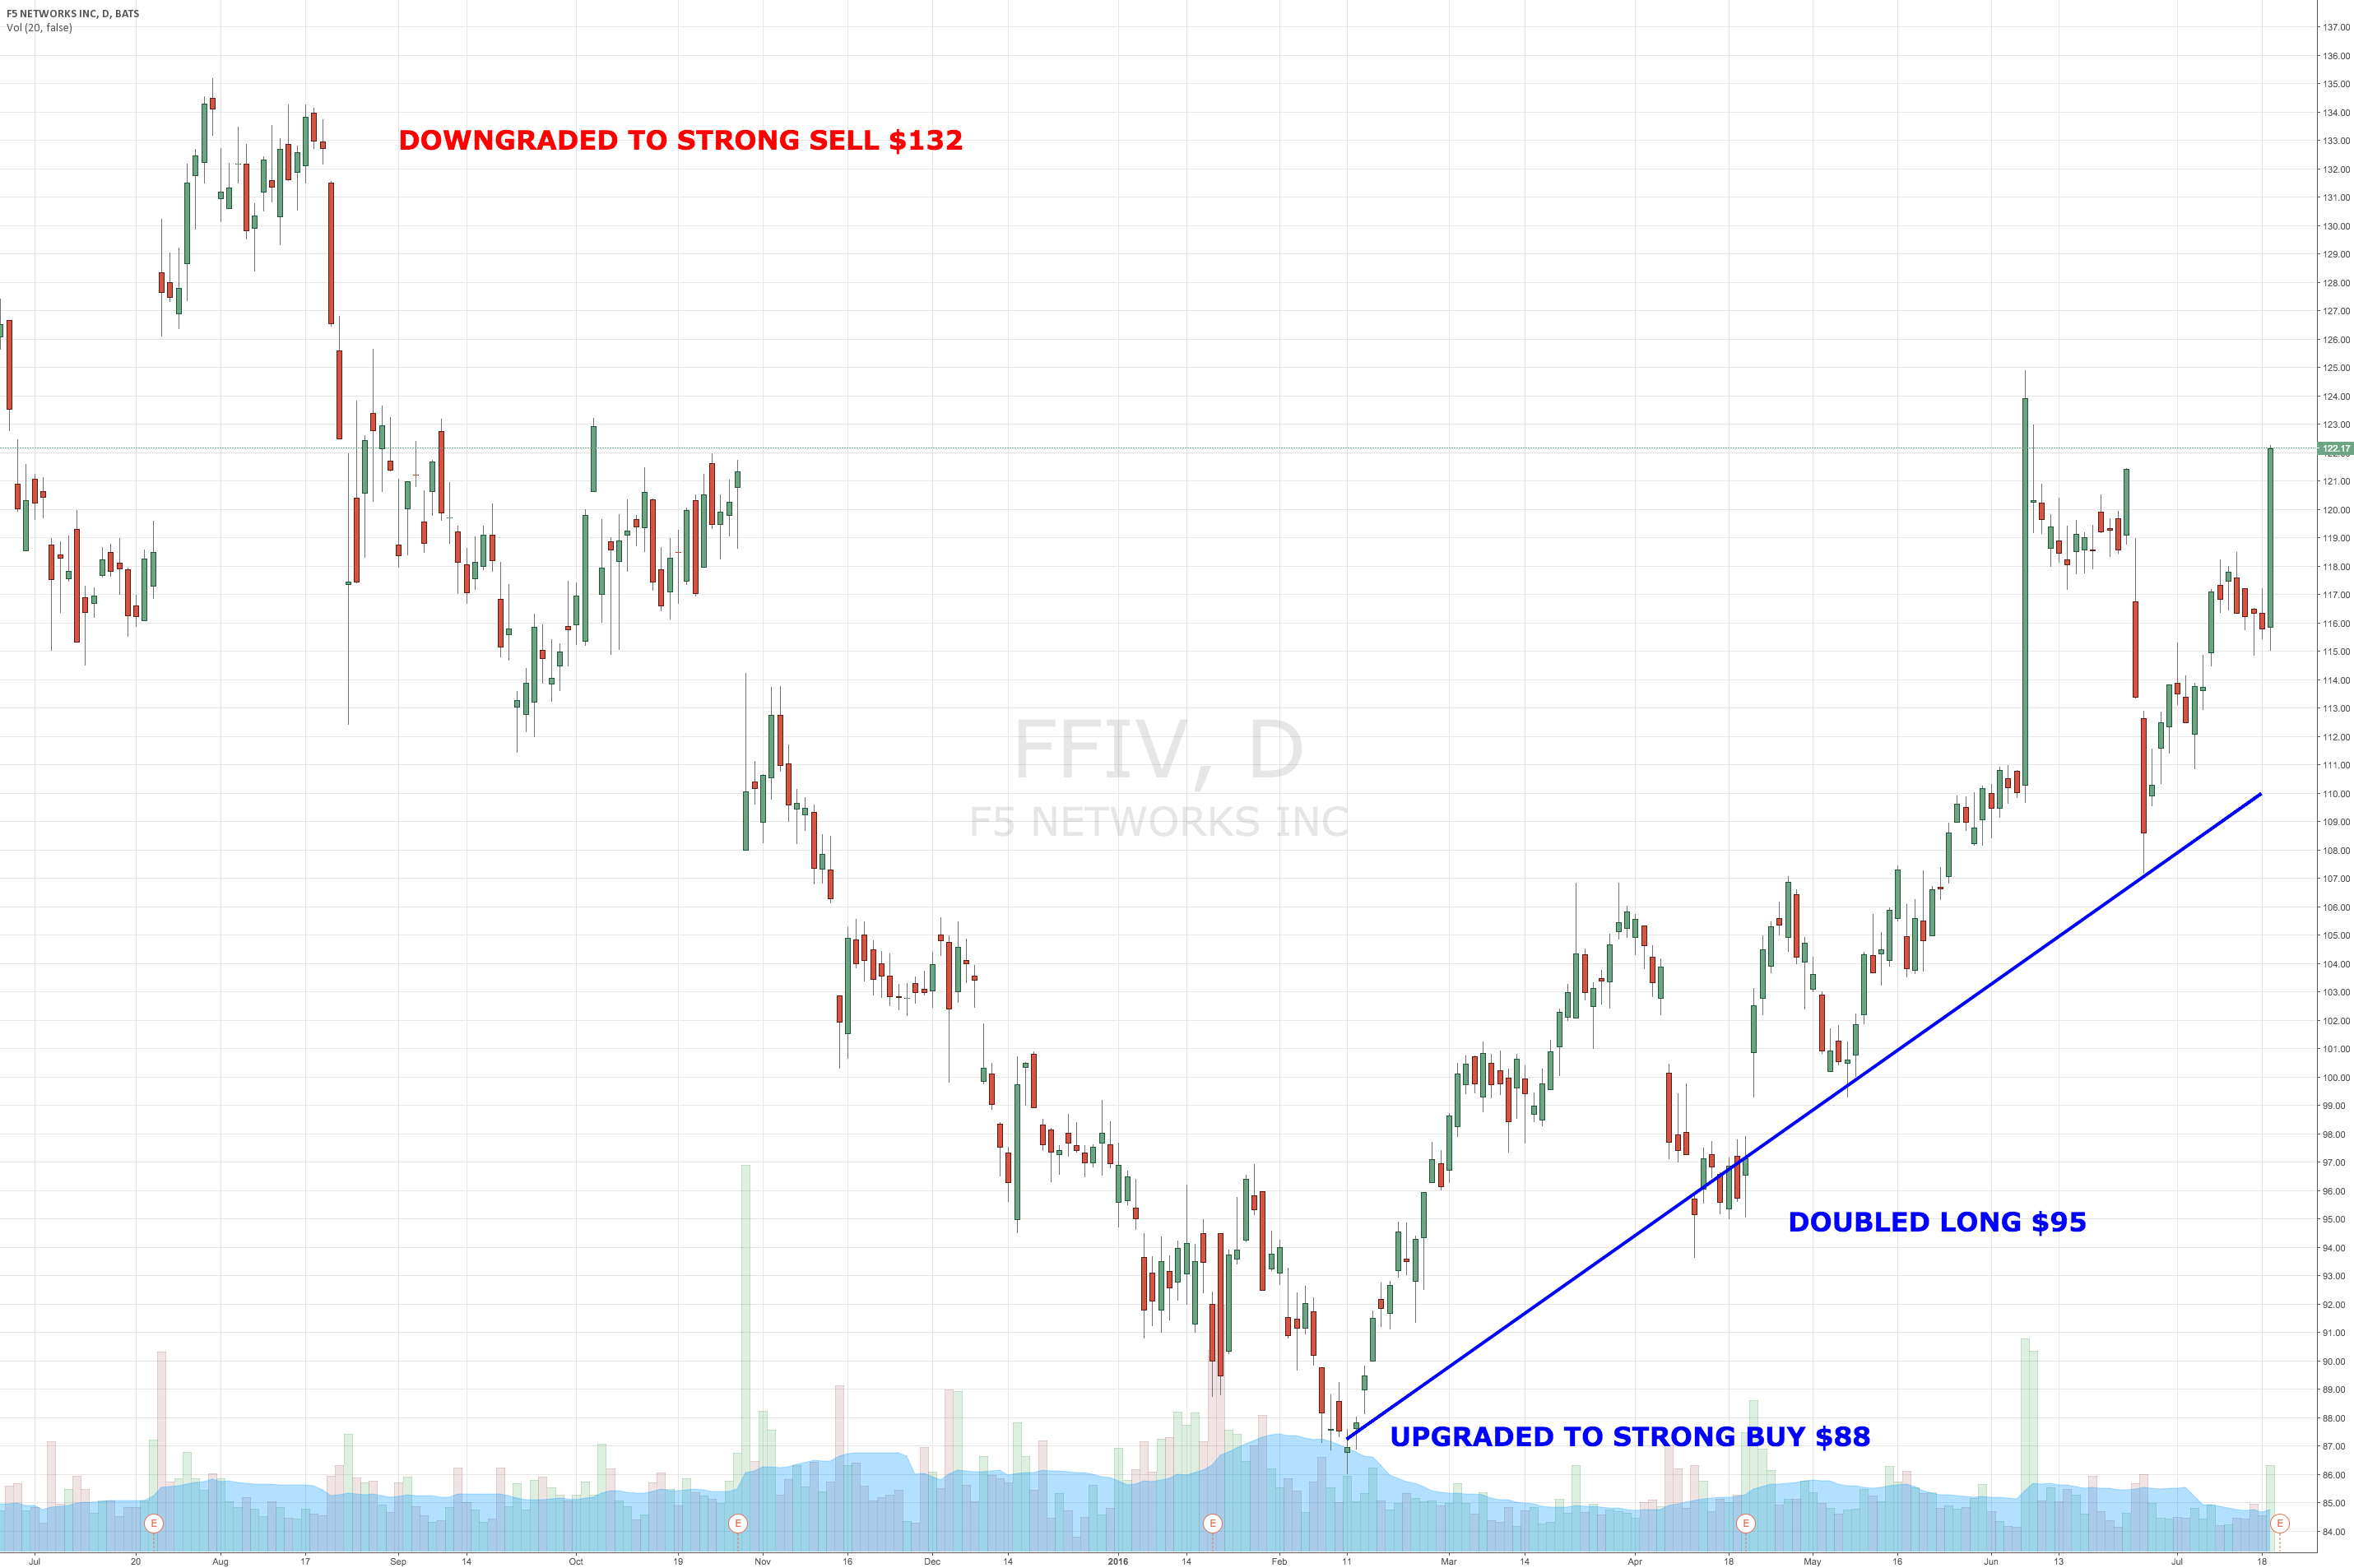 Invest in F5 Networks Ahead of Buyout